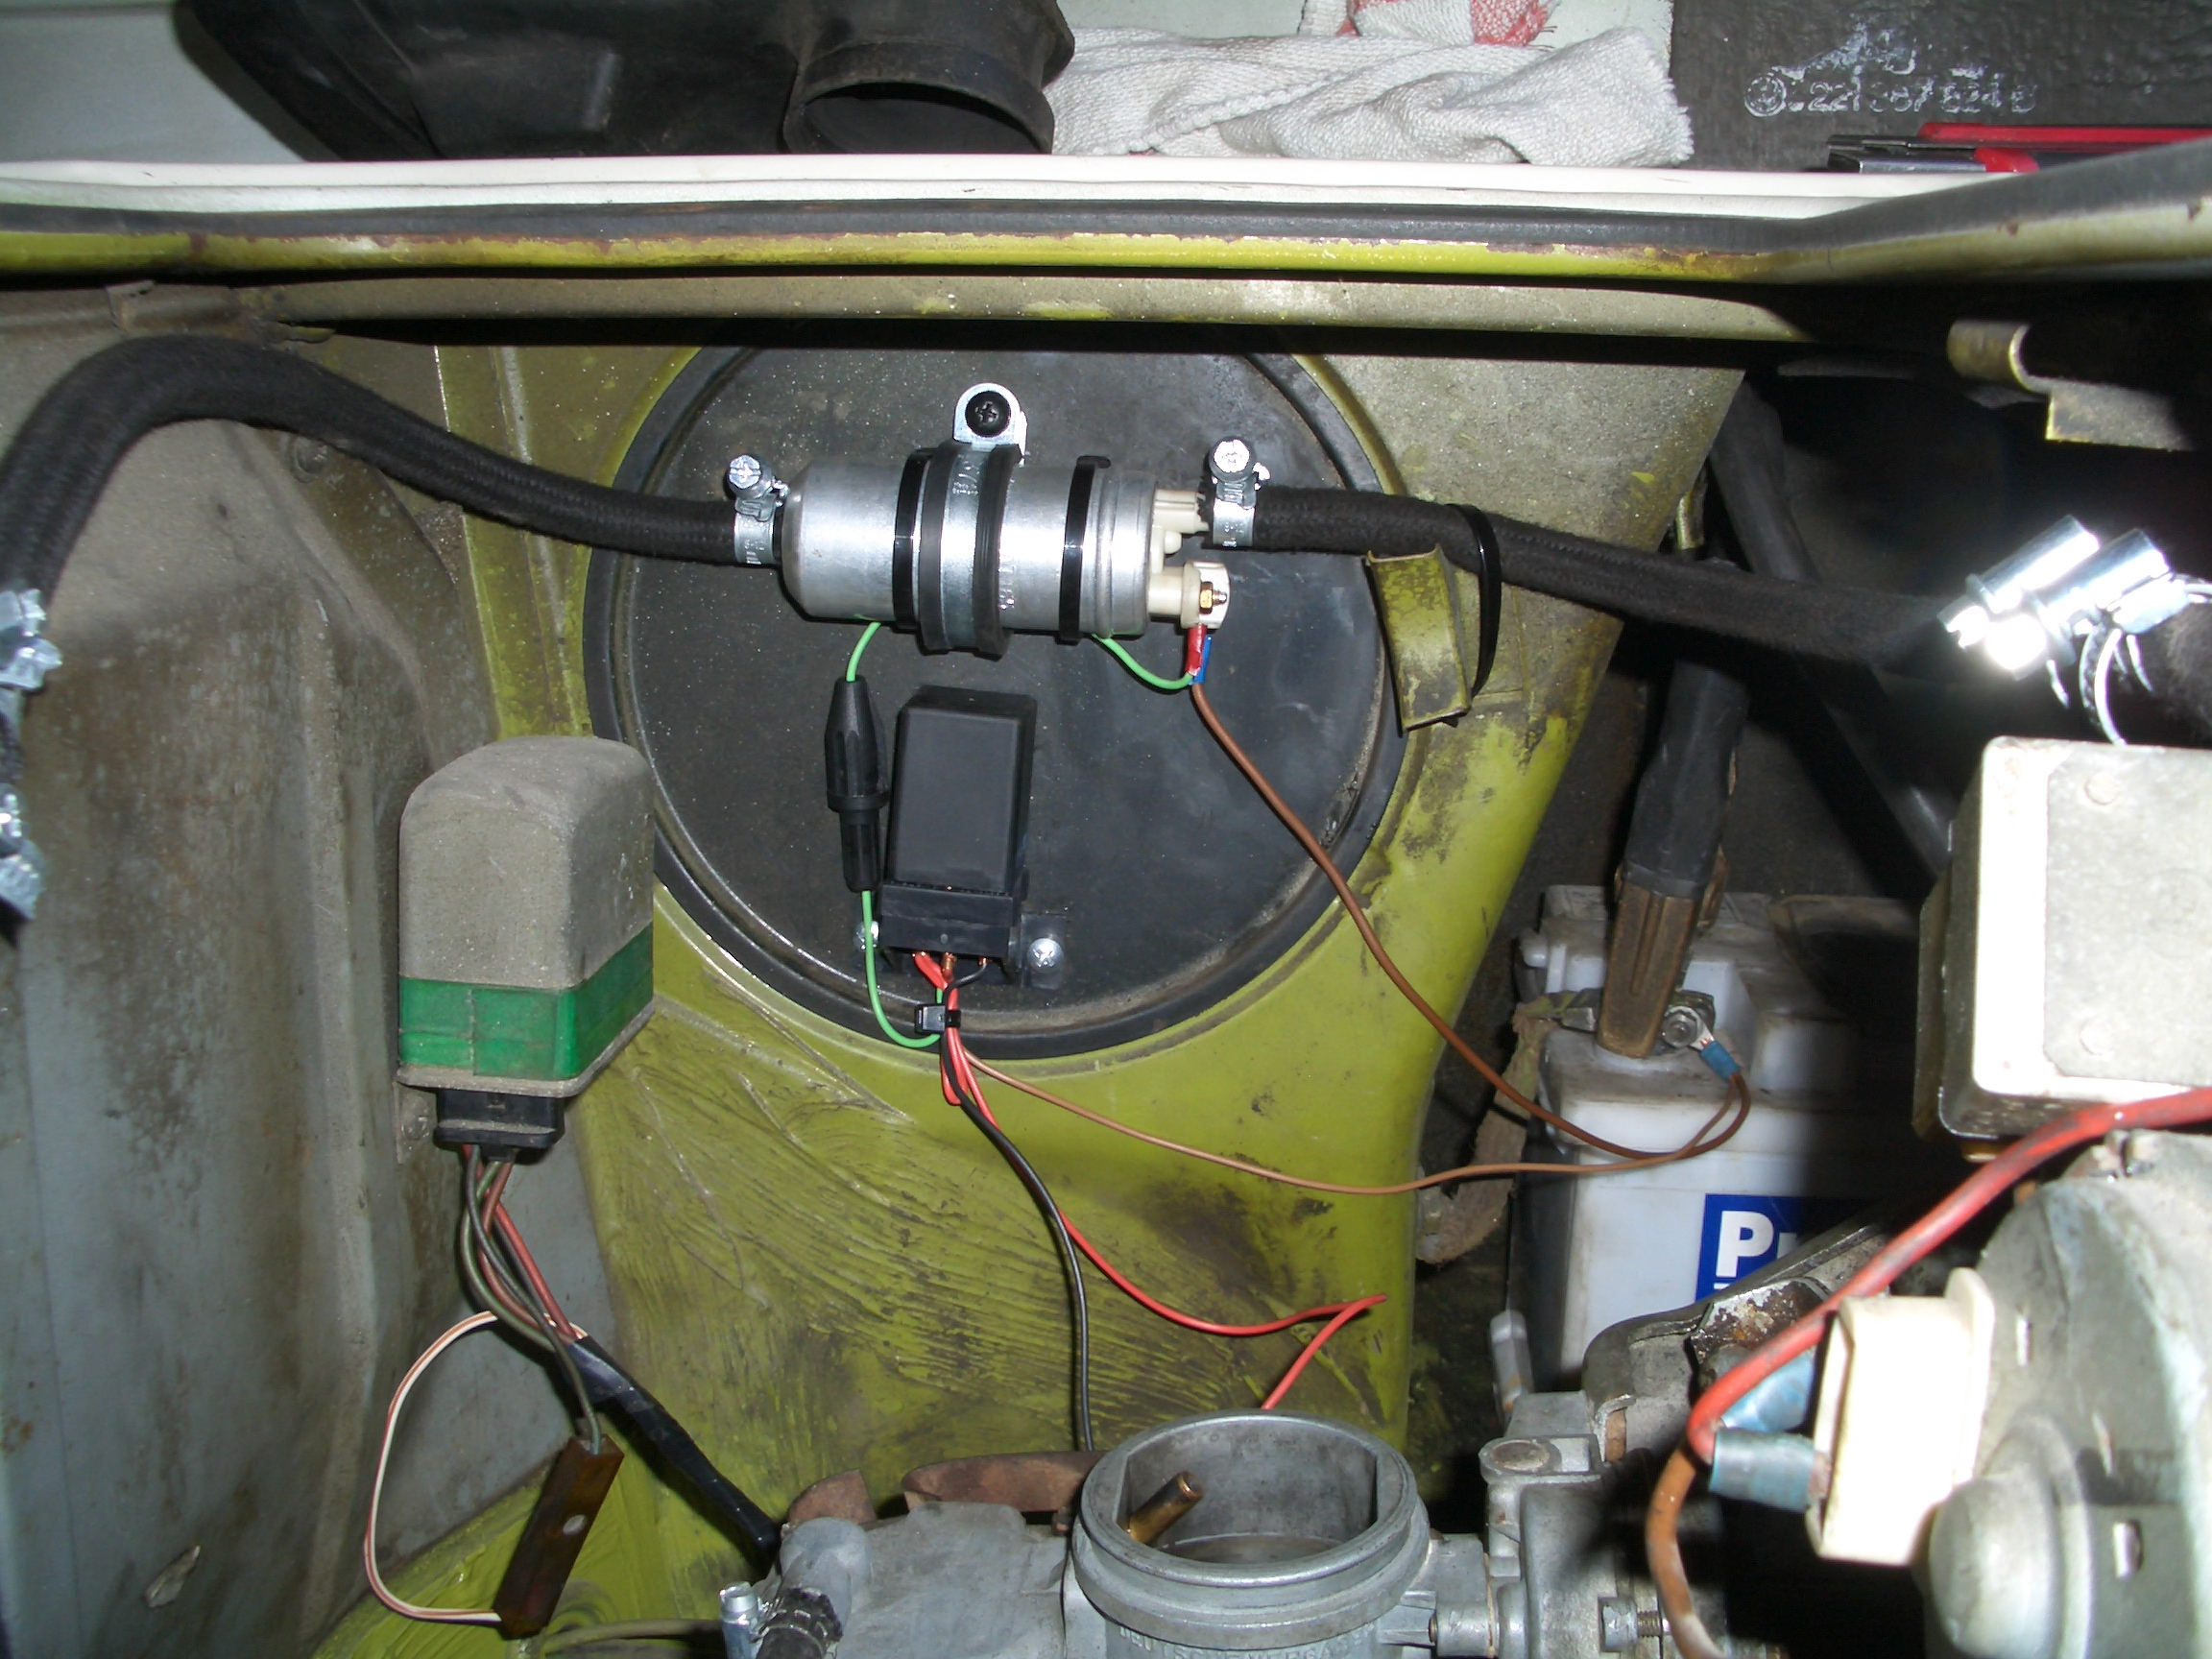 Fuel Pump Campervan Crazy Spare Electric Along With My Hose The New And Control Unit